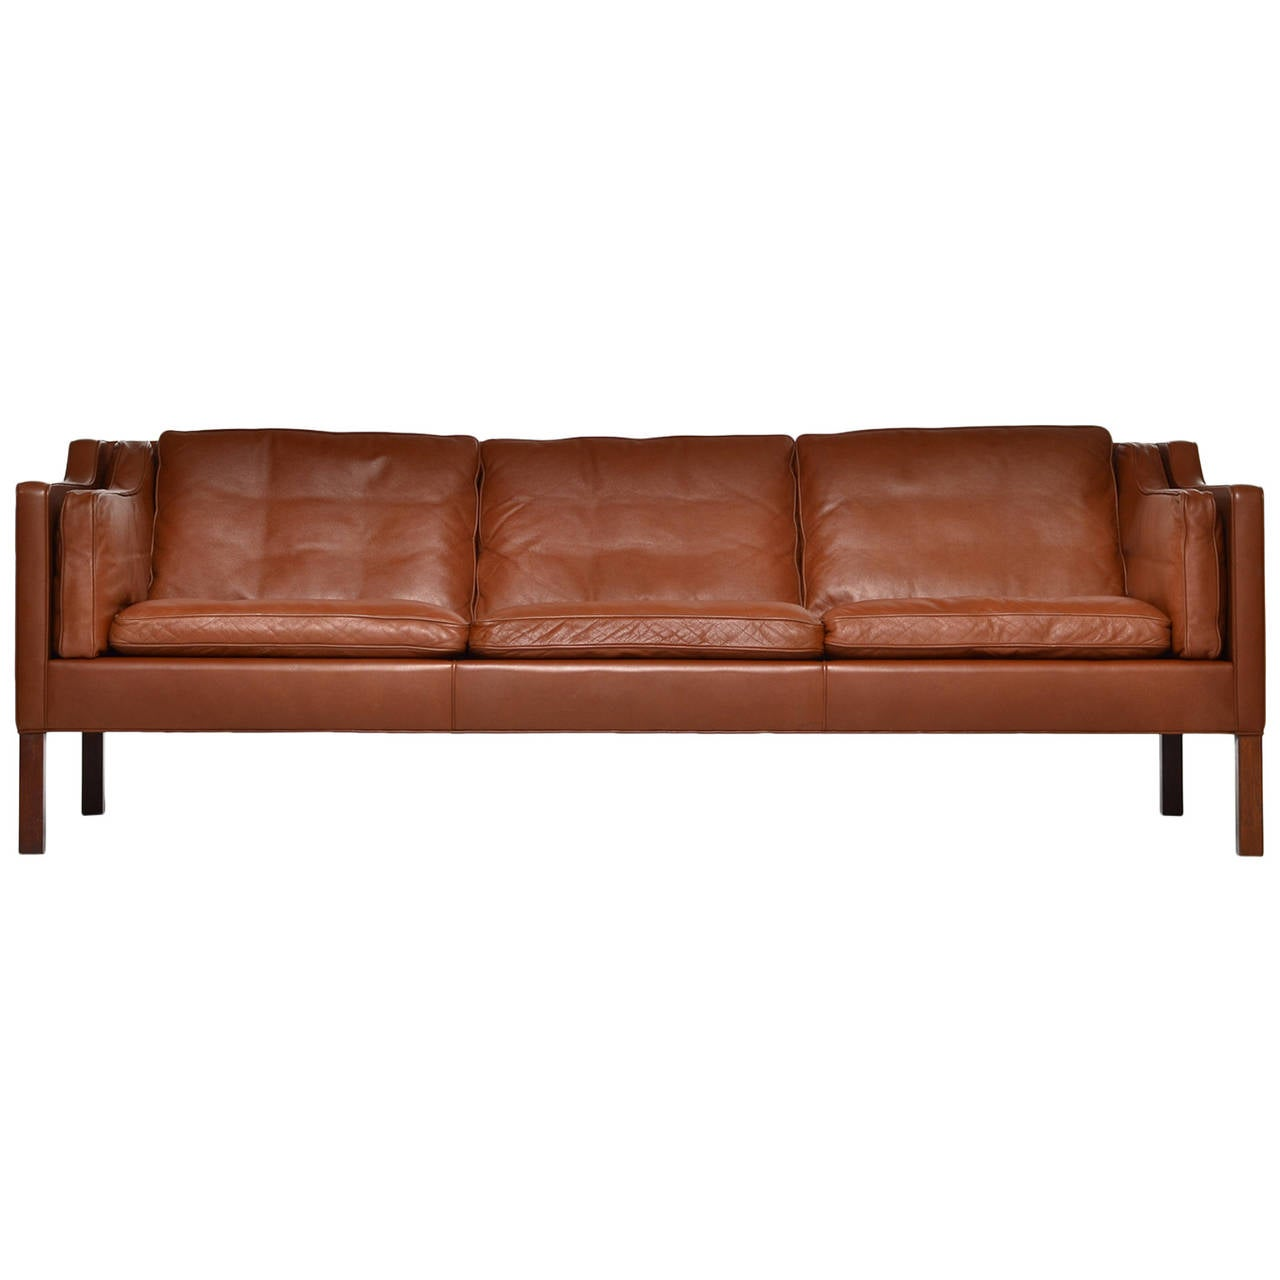 cognac leather sofa model 2213 by b rge mogensen for. Black Bedroom Furniture Sets. Home Design Ideas